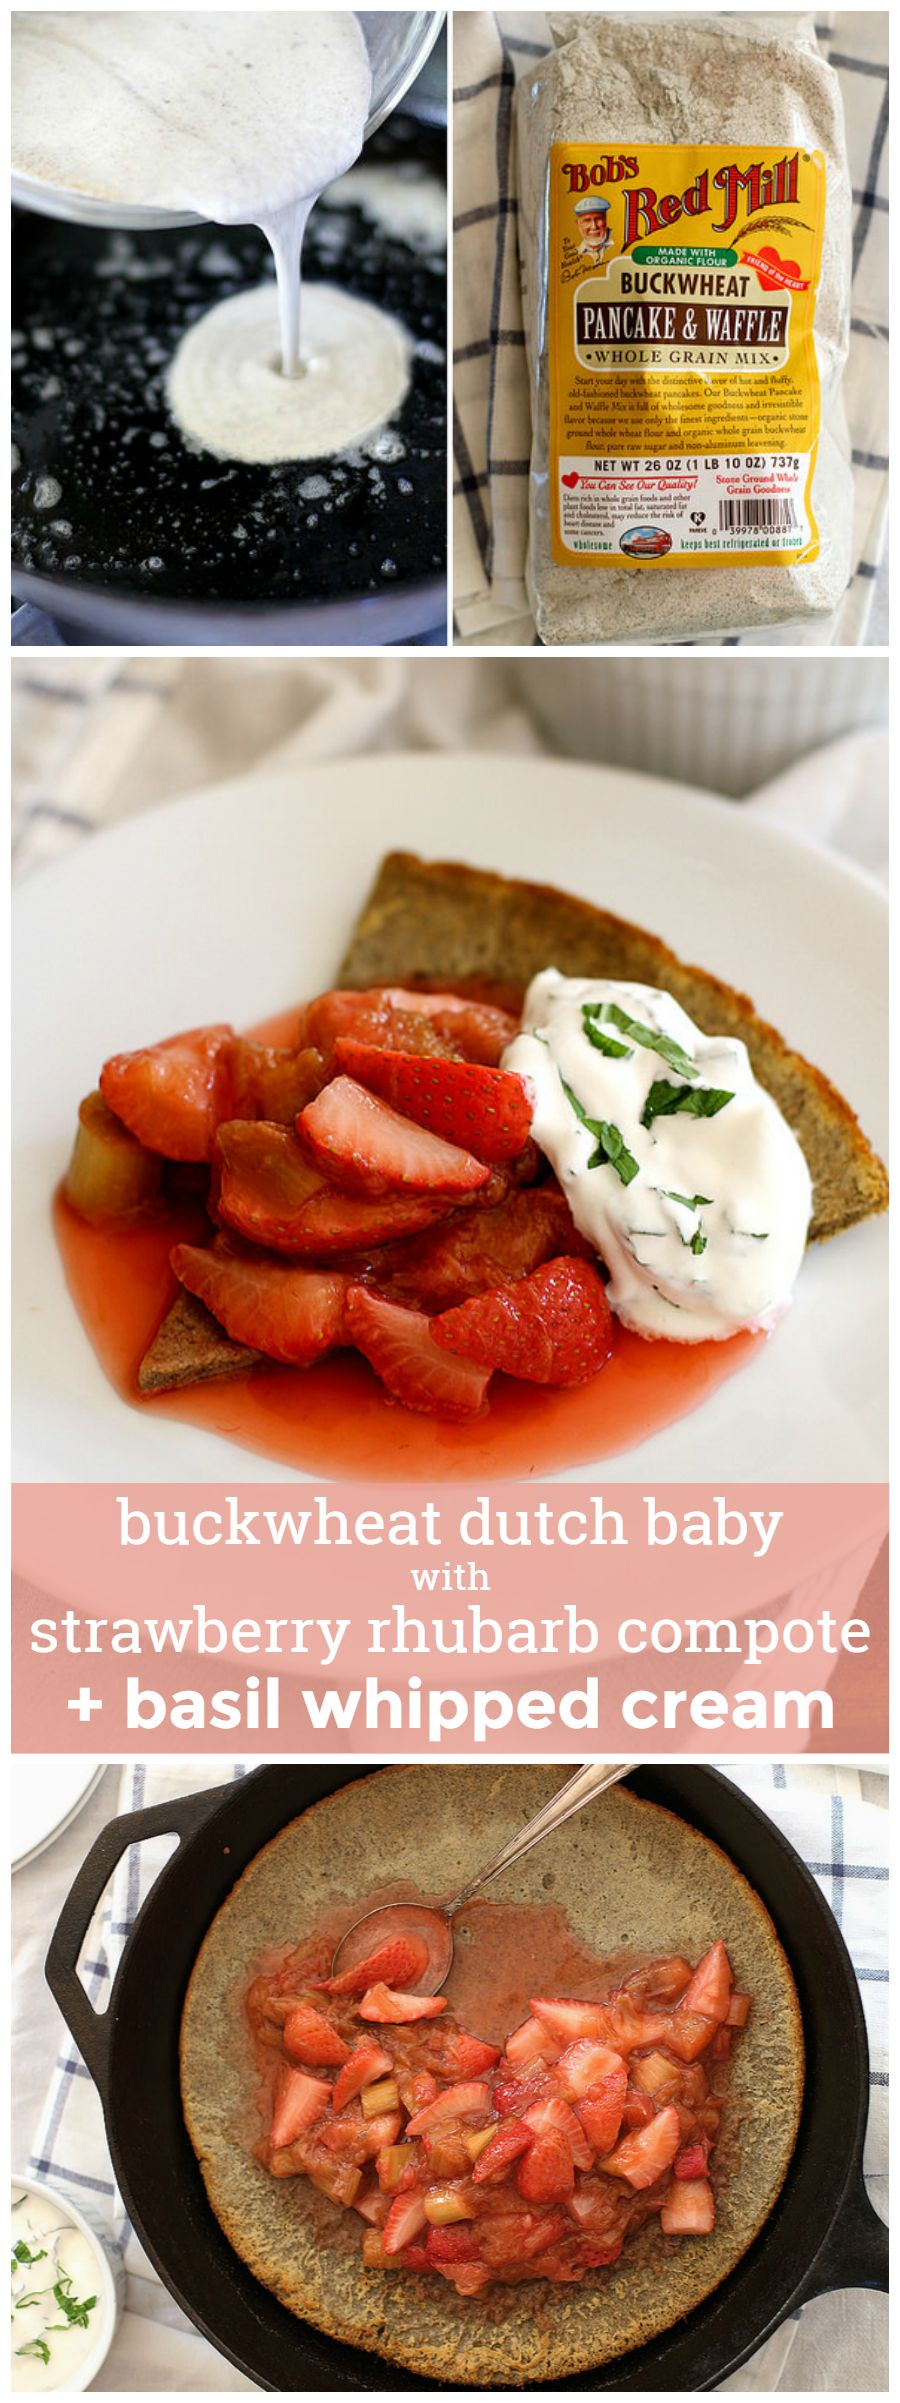 Buckwheat Dutch Baby with Strawberry Rhubarb Compote and Basil Whipped Cream -- perfect for weekend brunch. girlversusdough.com @girlversusdough